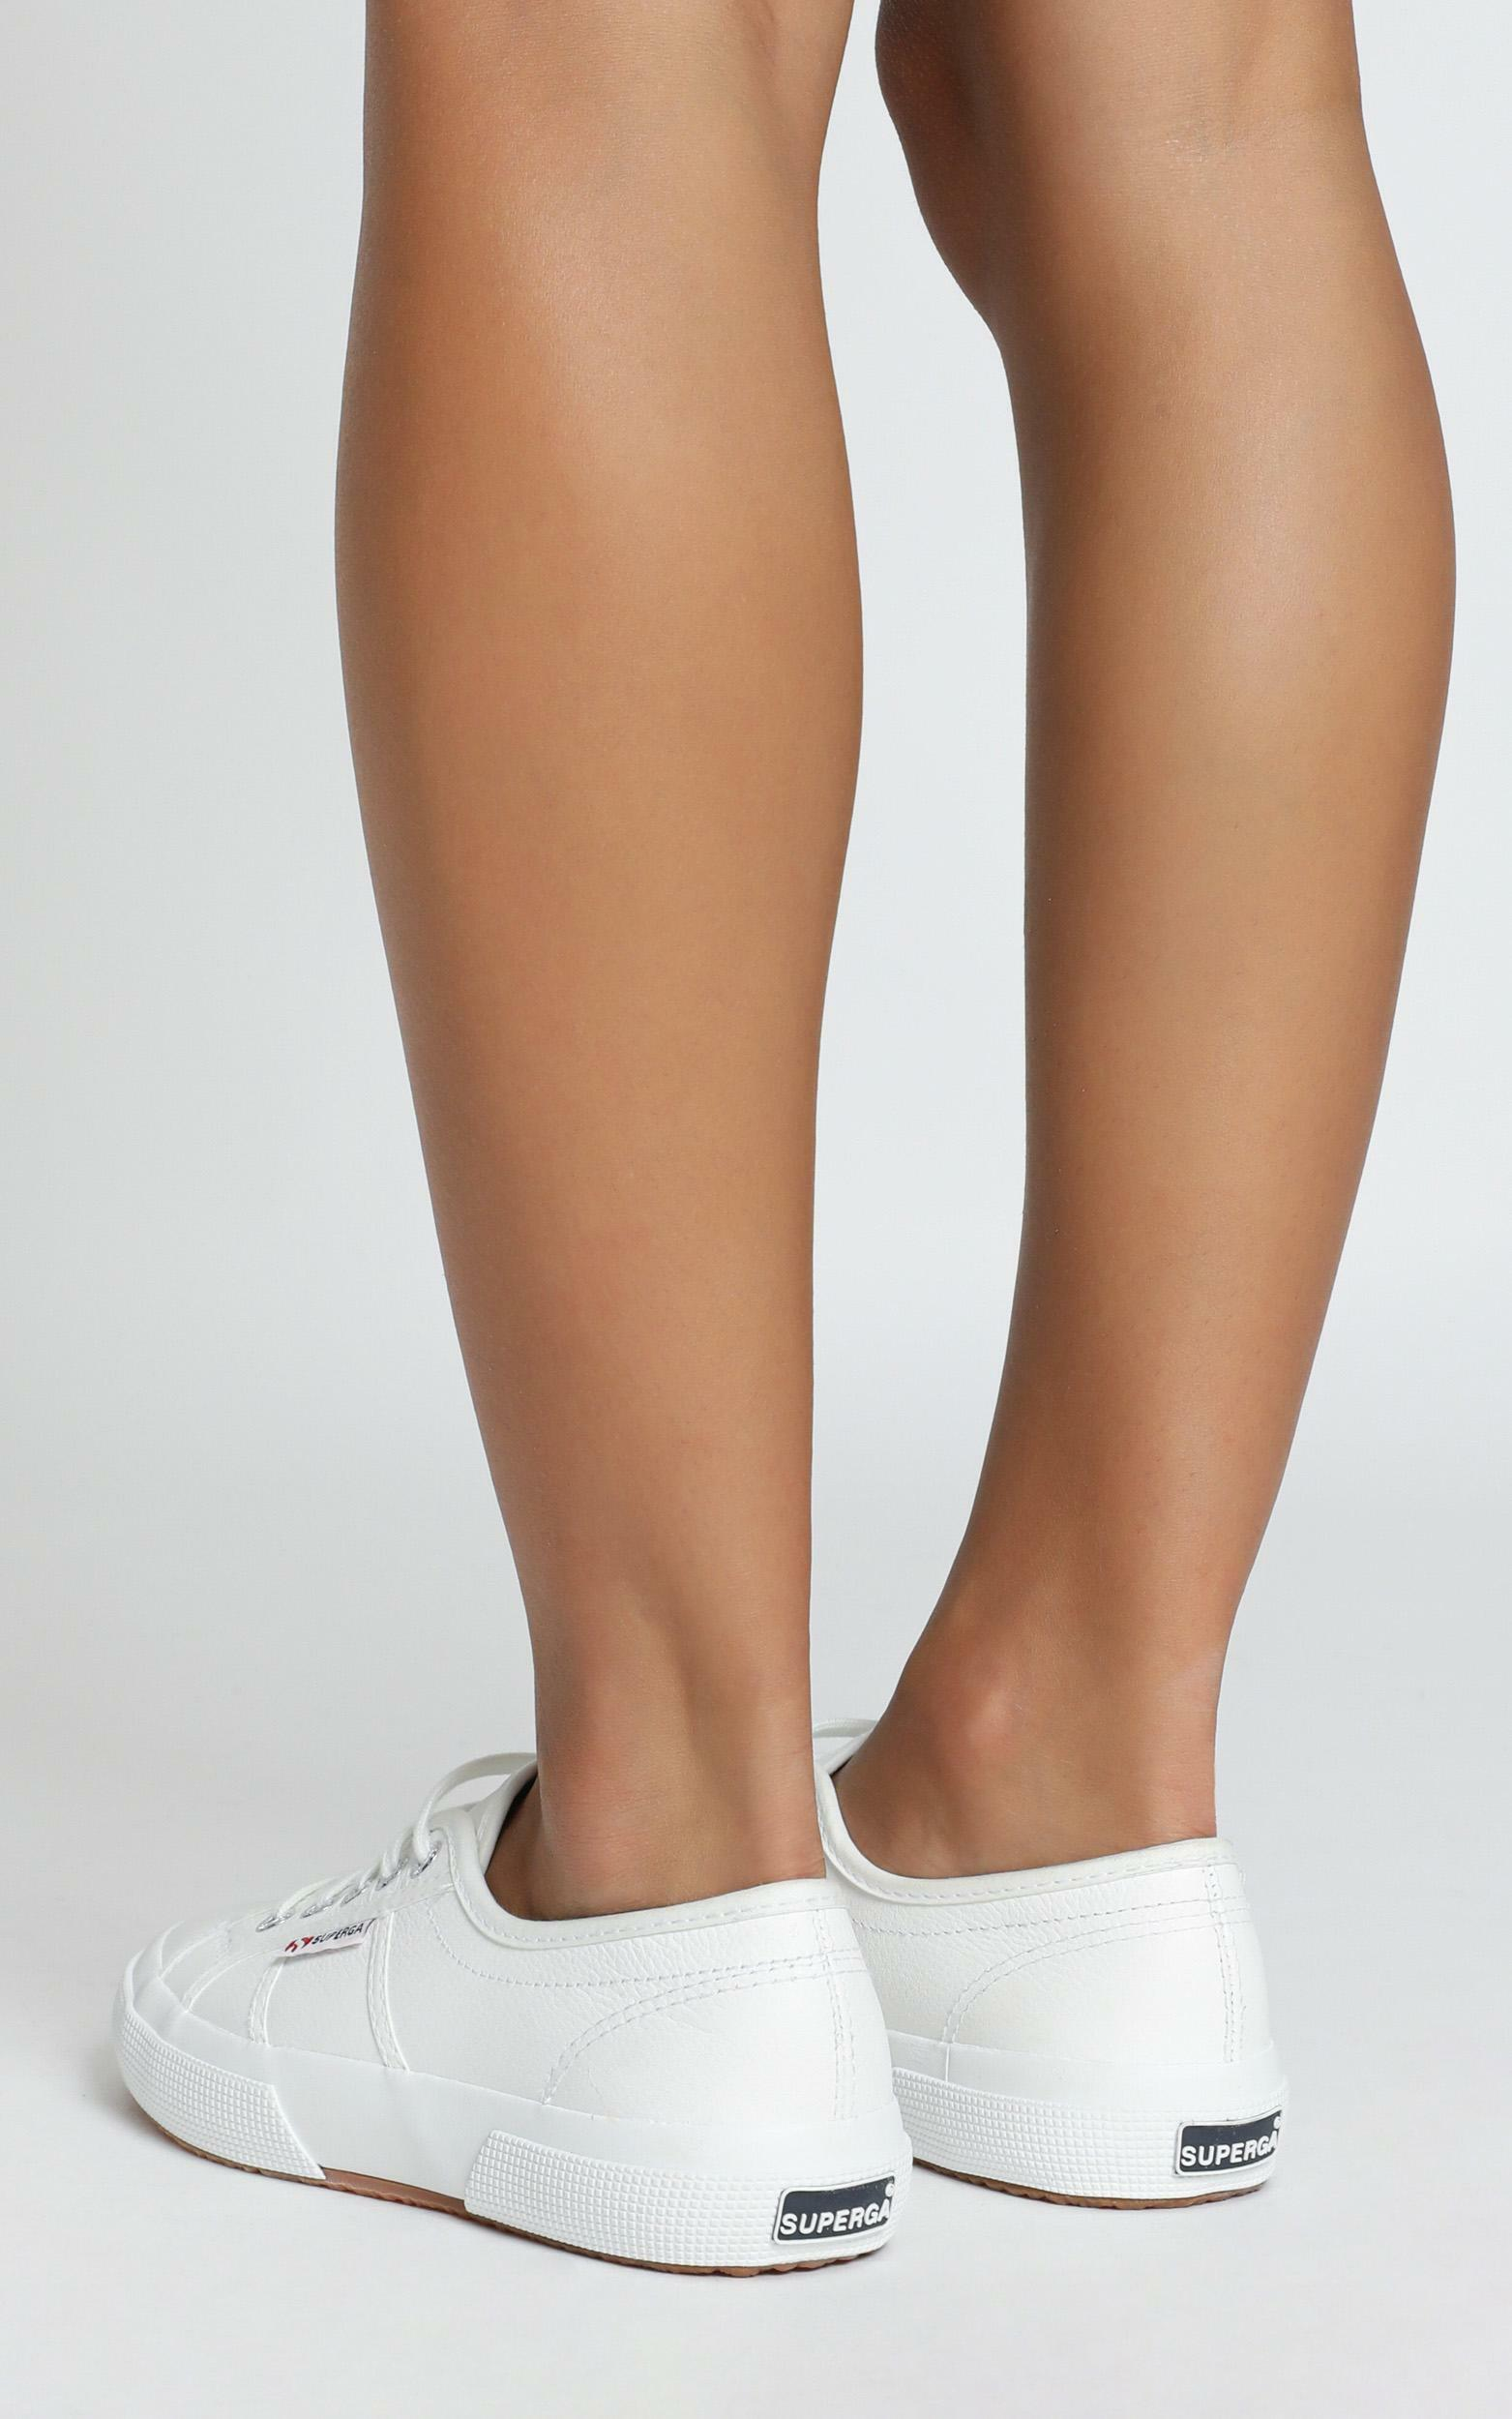 Superga - 2750 EFGLU Sneaker in white leather - 5, WHT3, hi-res image number null